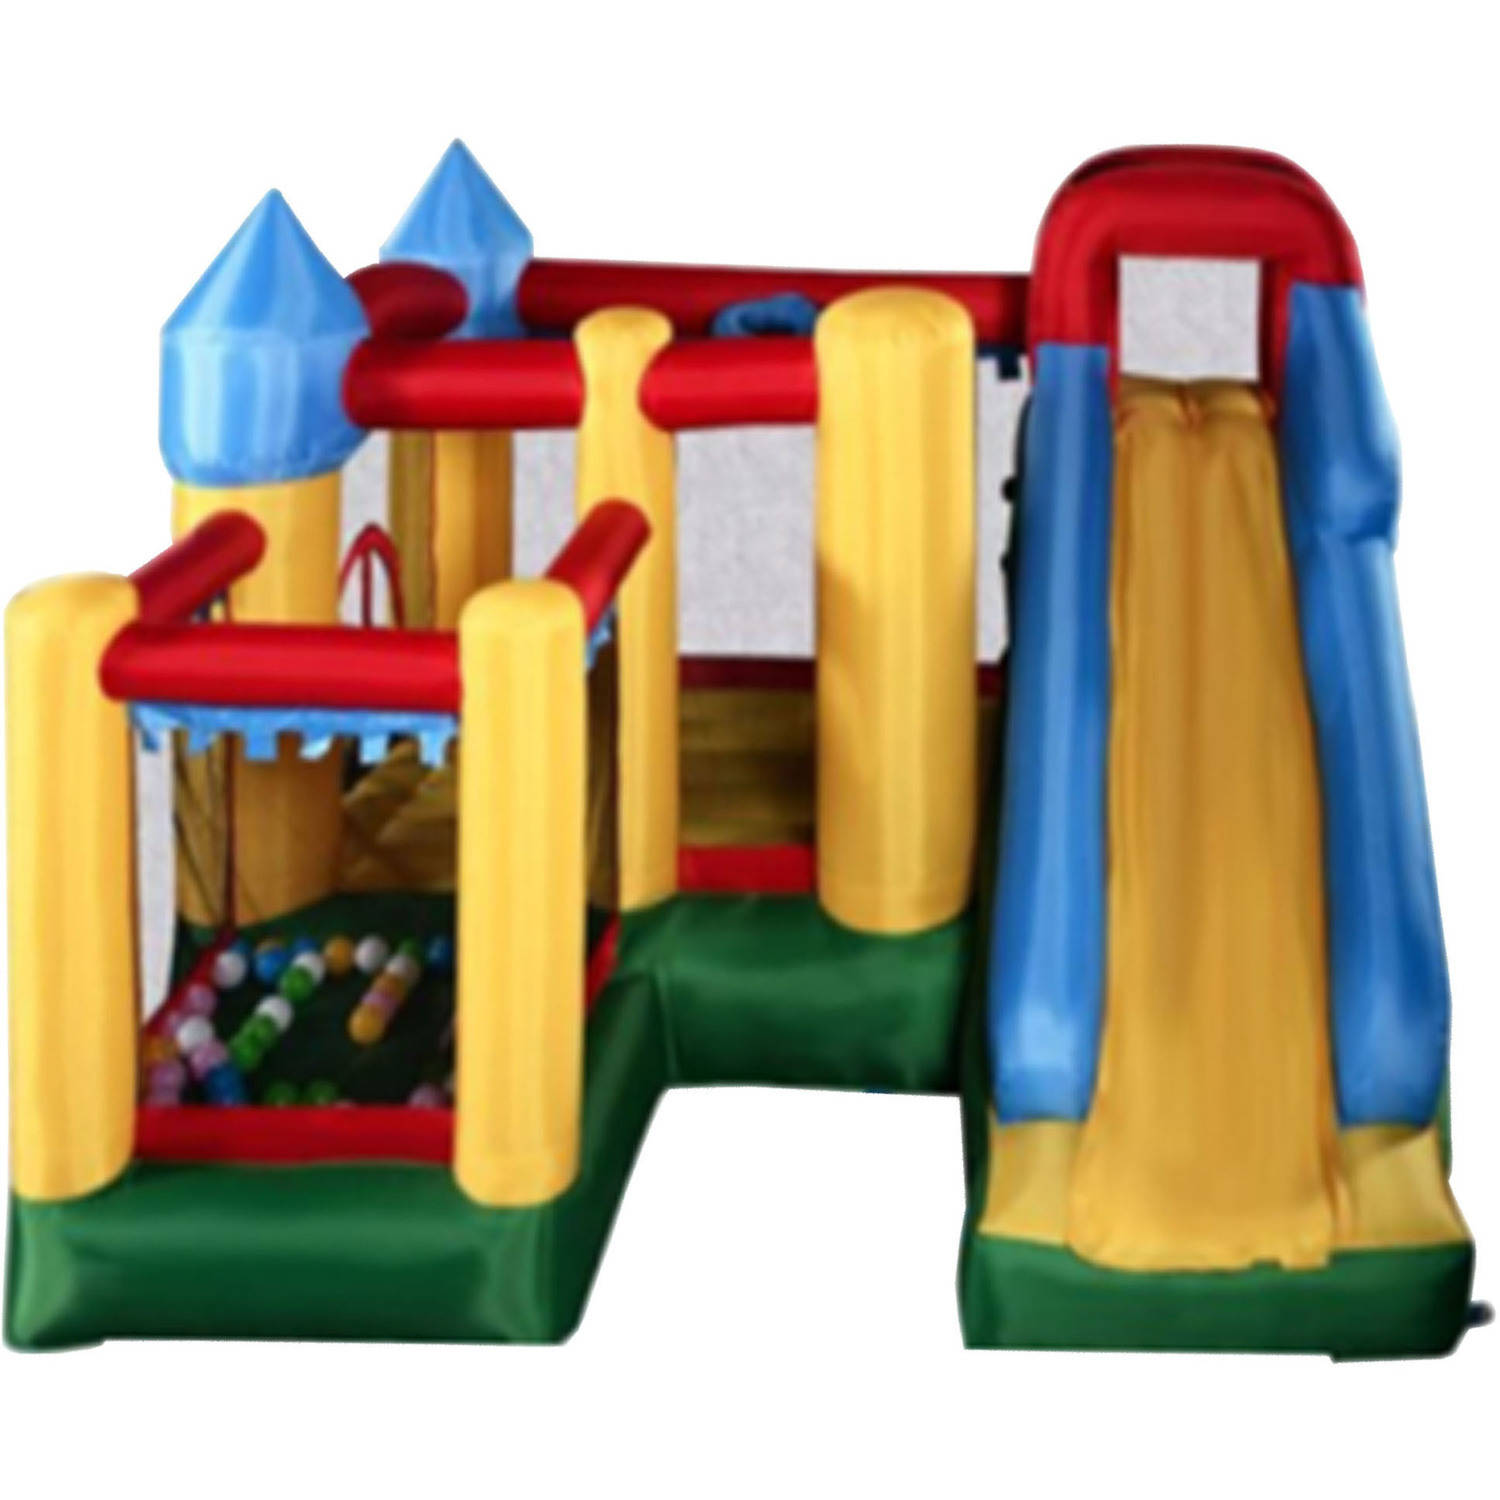 ALEKO BHPOOL Commercial Inflatable Fun Slide Bounce House with Ball Pit and Blower by ALEKO